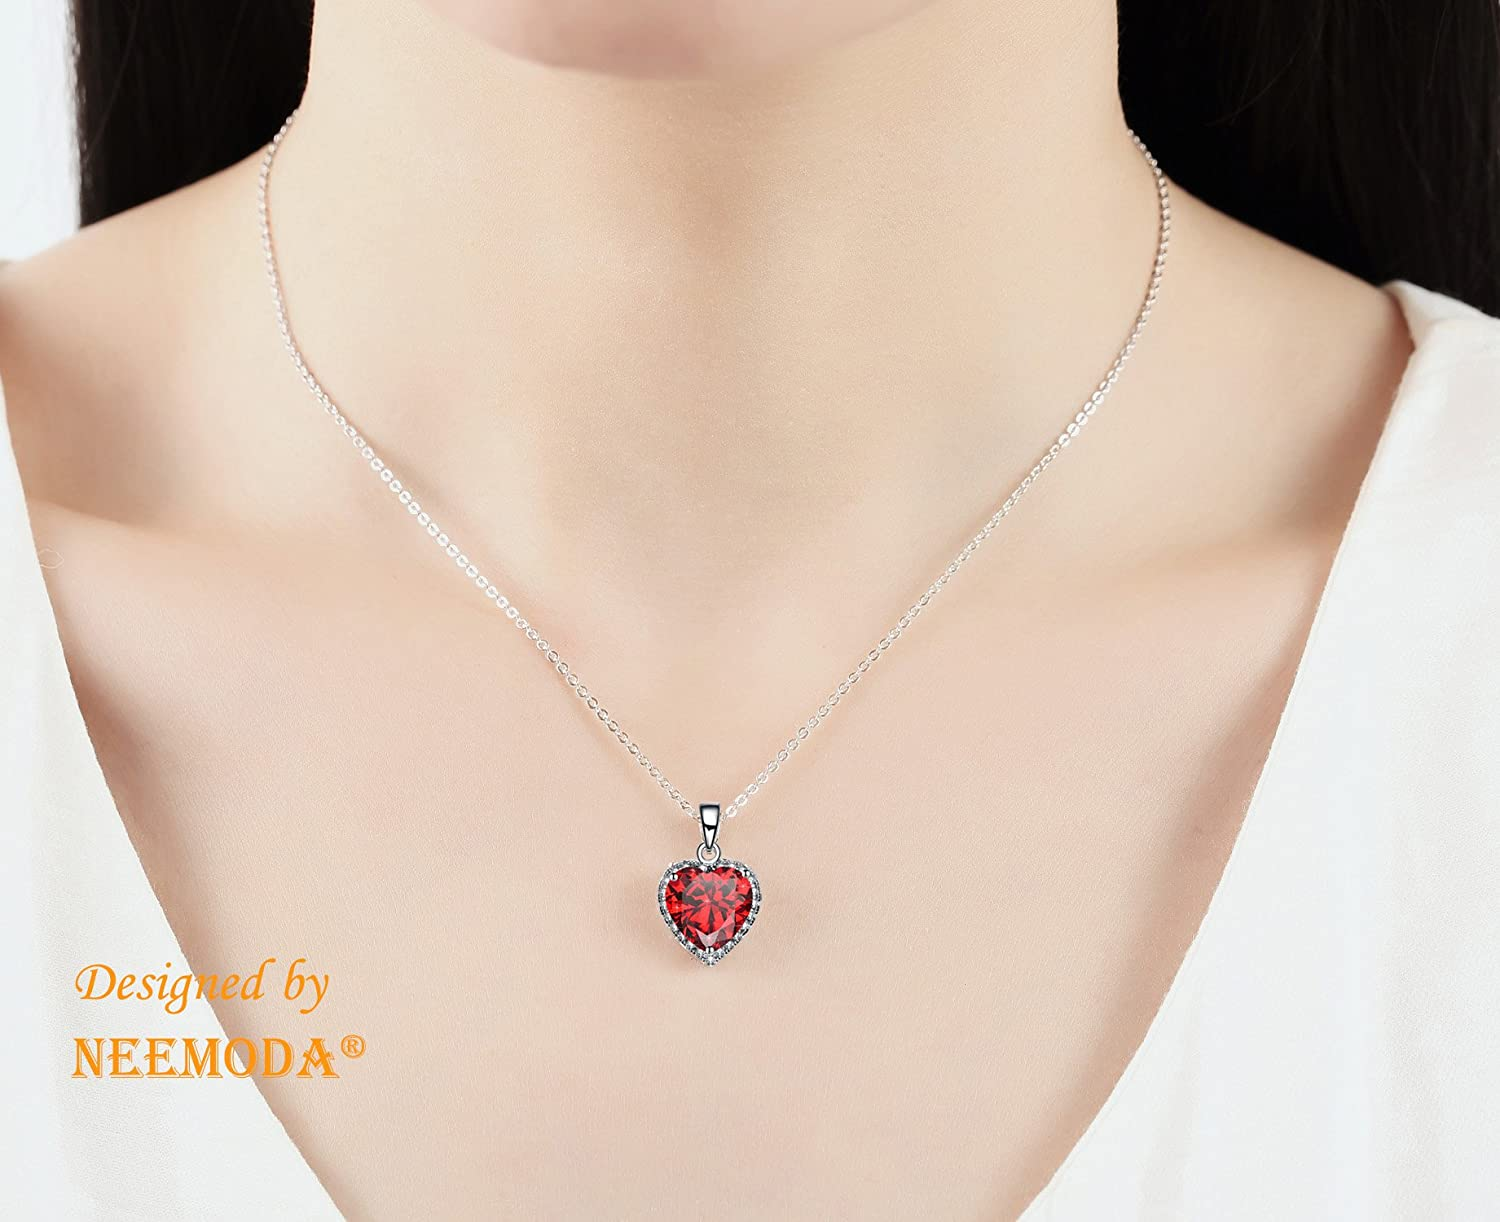 NEEMODA Shining Love Hand-Inlaid 5A Cubic Zirconia Heart Necklace with Luxury Gift Box, 18 inches 2 inches Triple White Gold Plated Chain